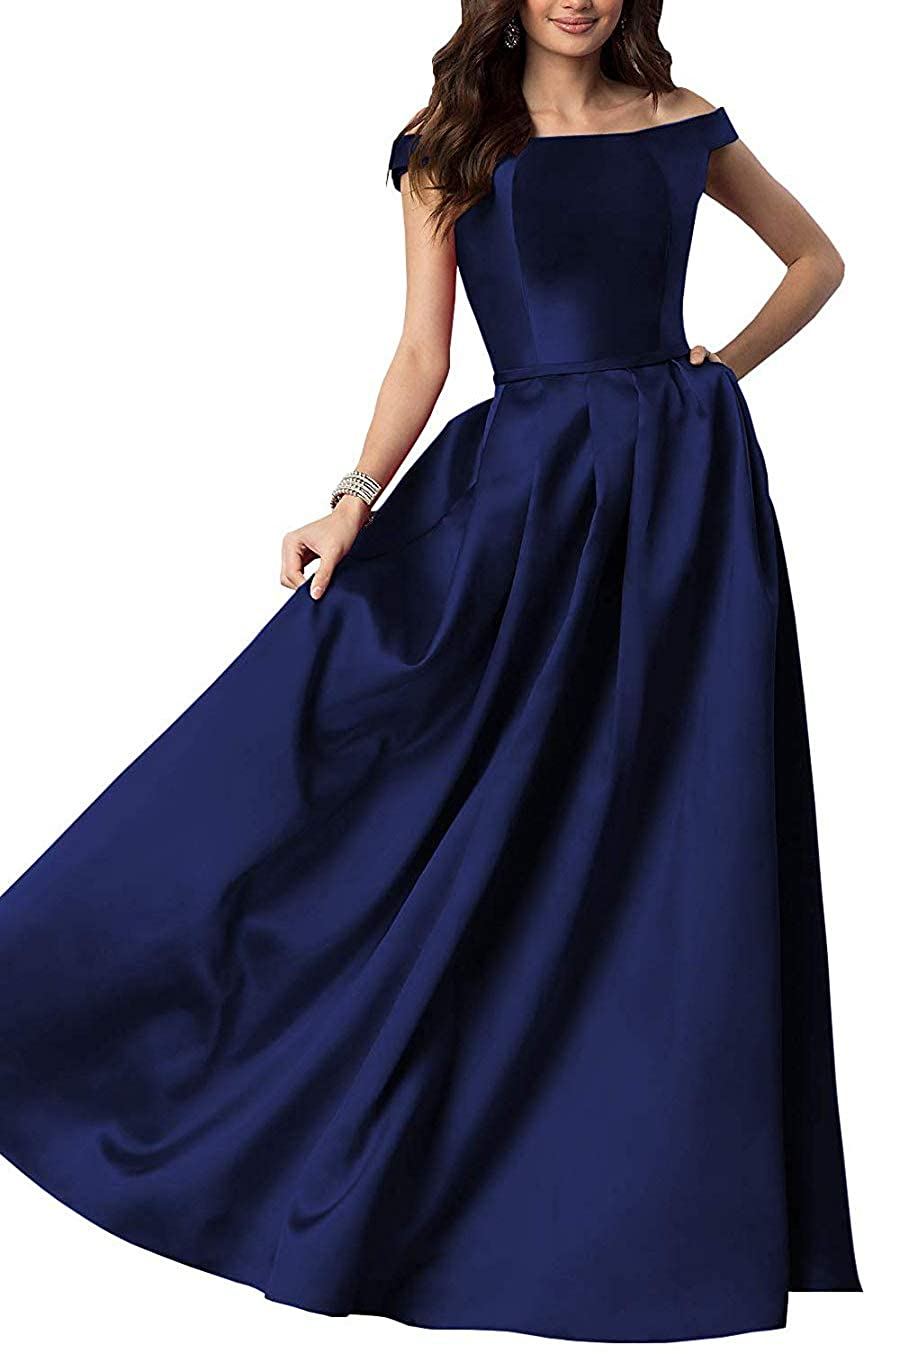 Navy bluee Women's OffTheShoulder Satin Long Gown Prom Dress Evening Dresses with Pockets